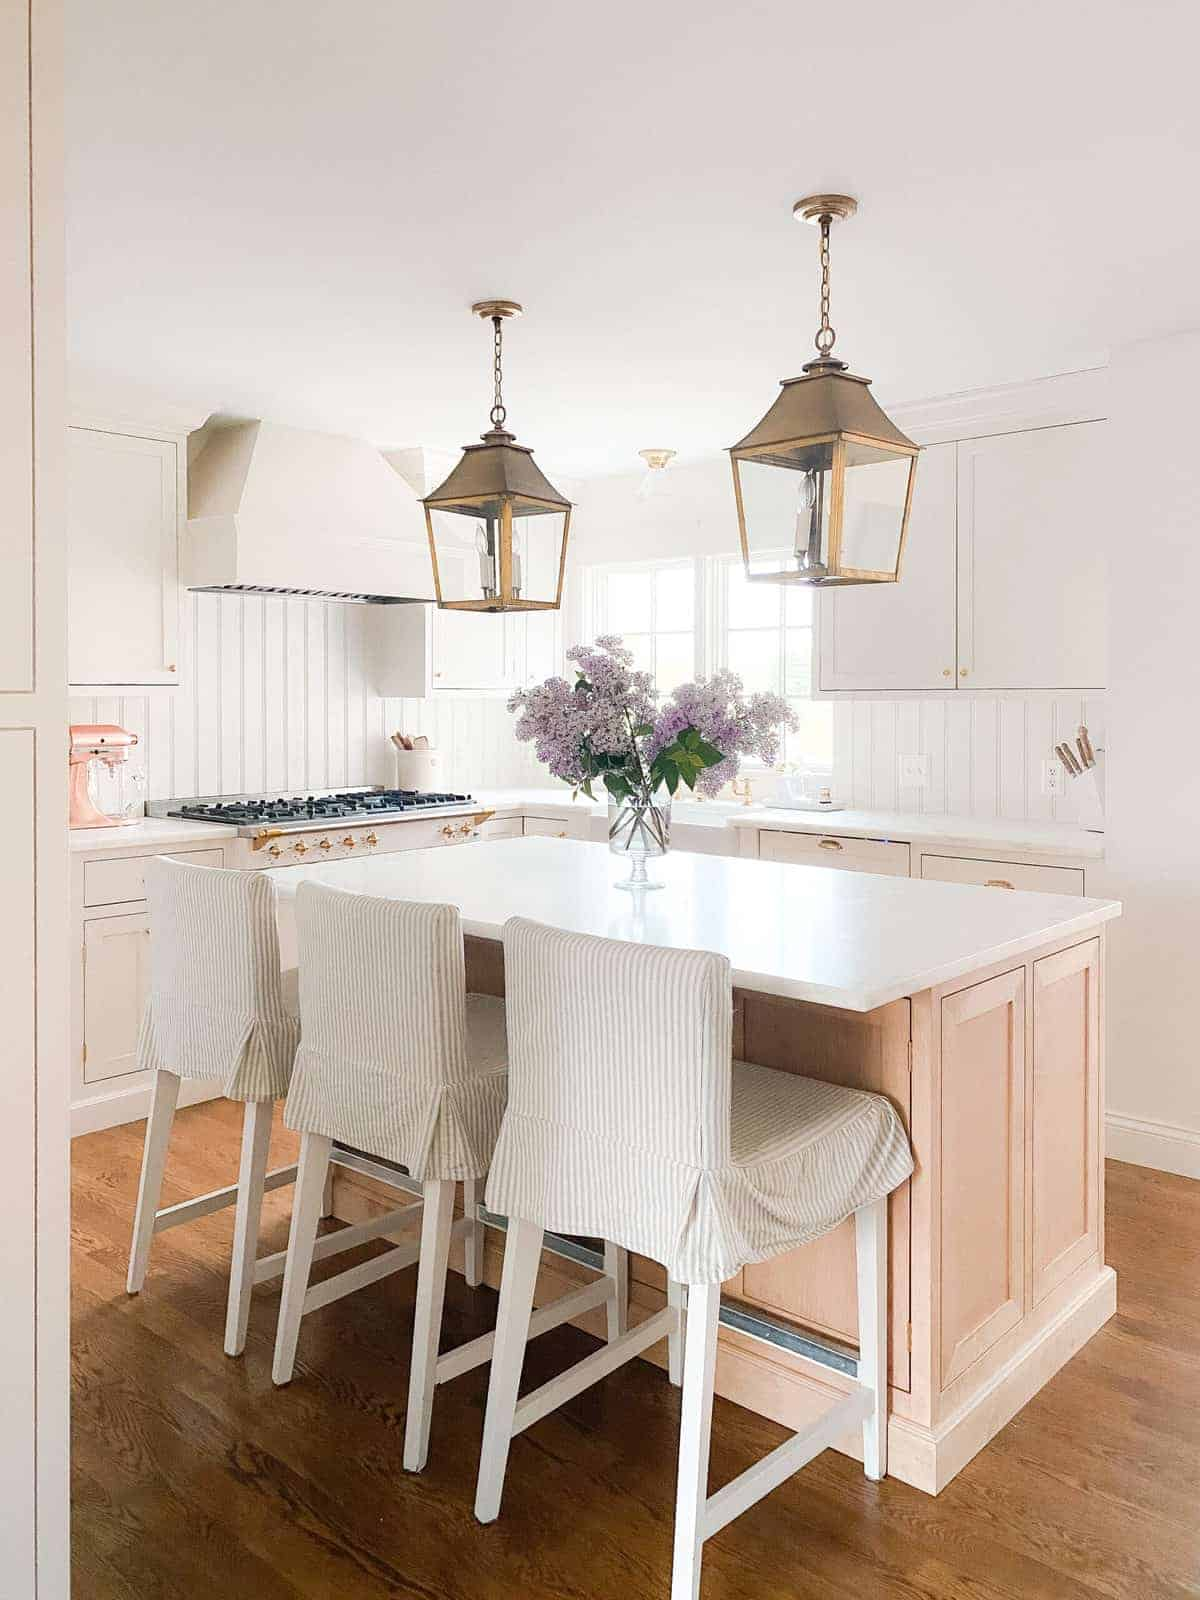 brass lanterns on the kitchen island